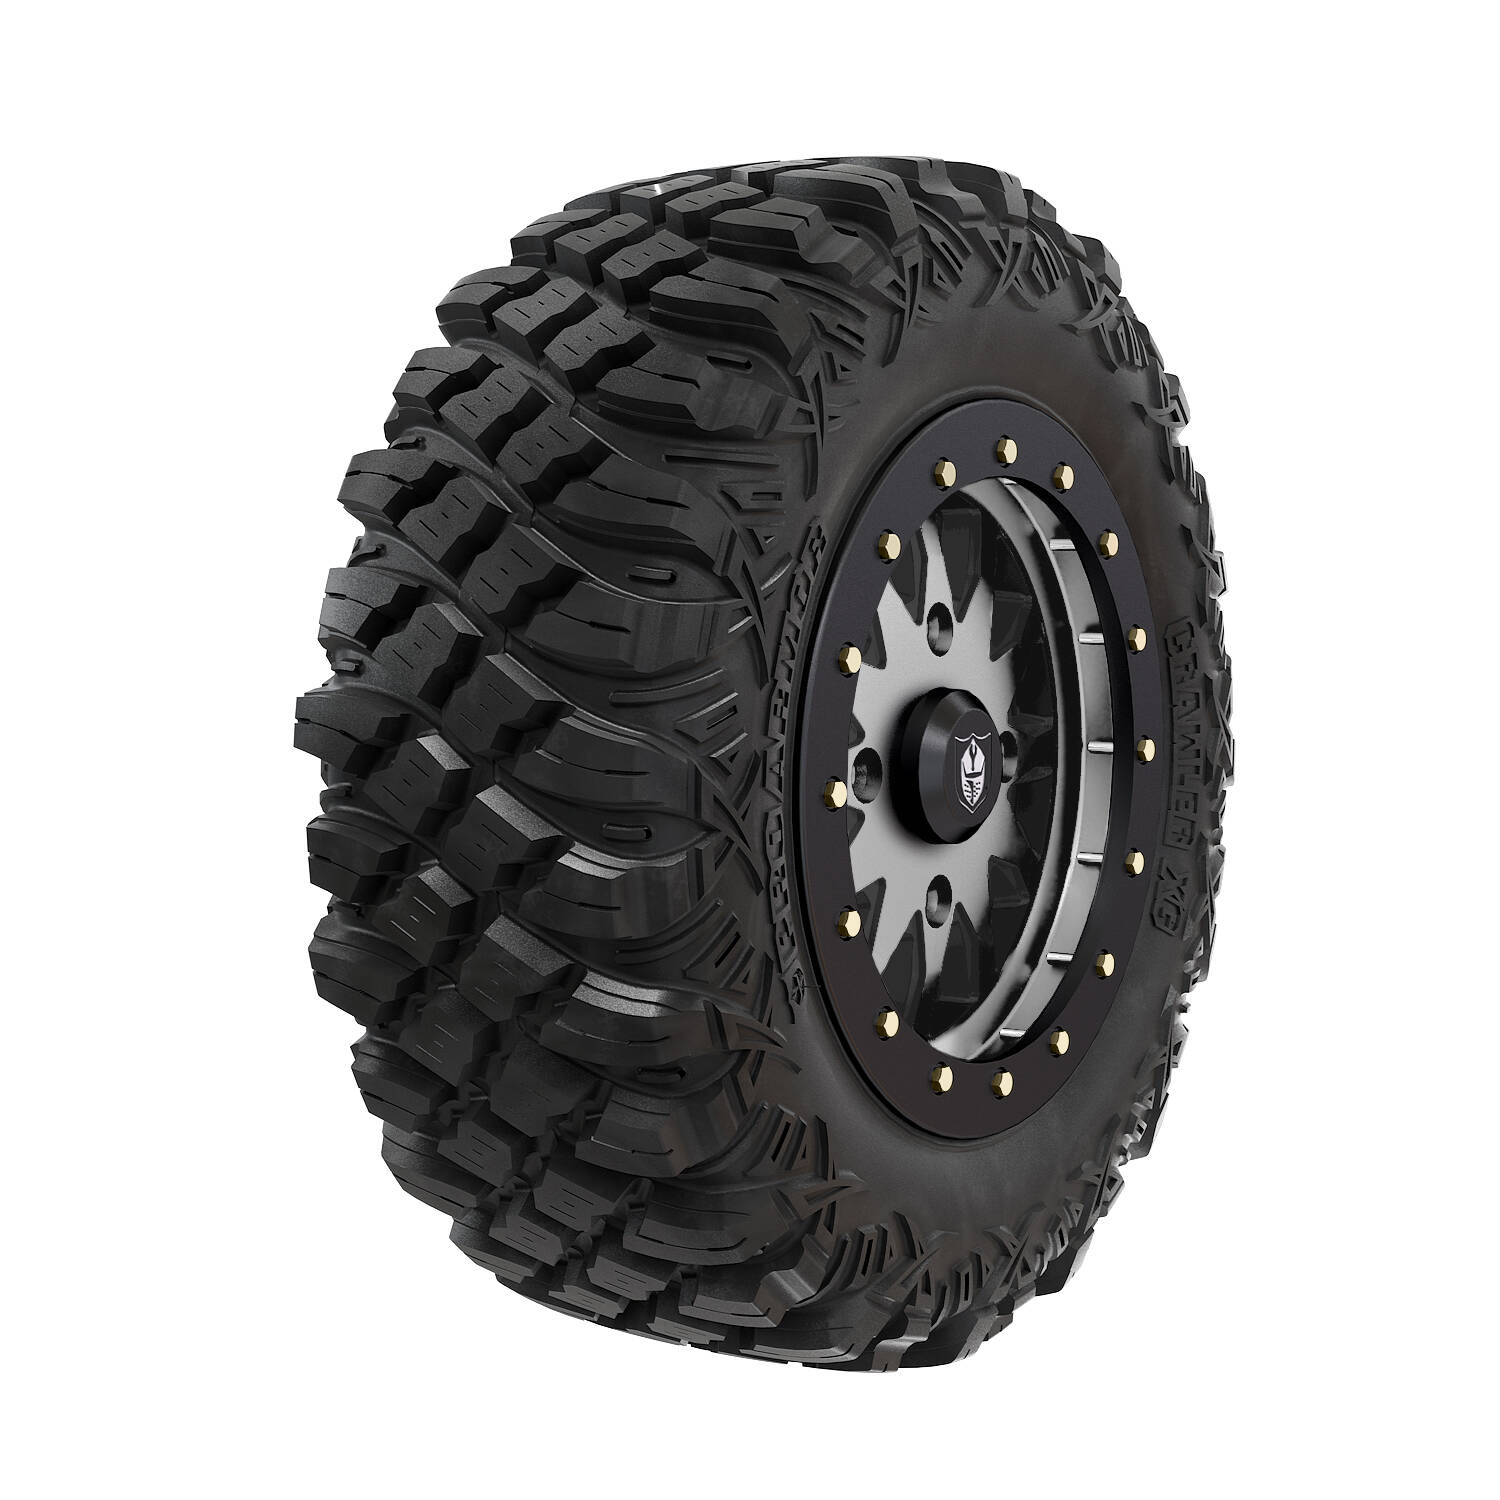 Pro Armor® Wheel & Tire Set: Halo - Accent & Crawler XG - 28""